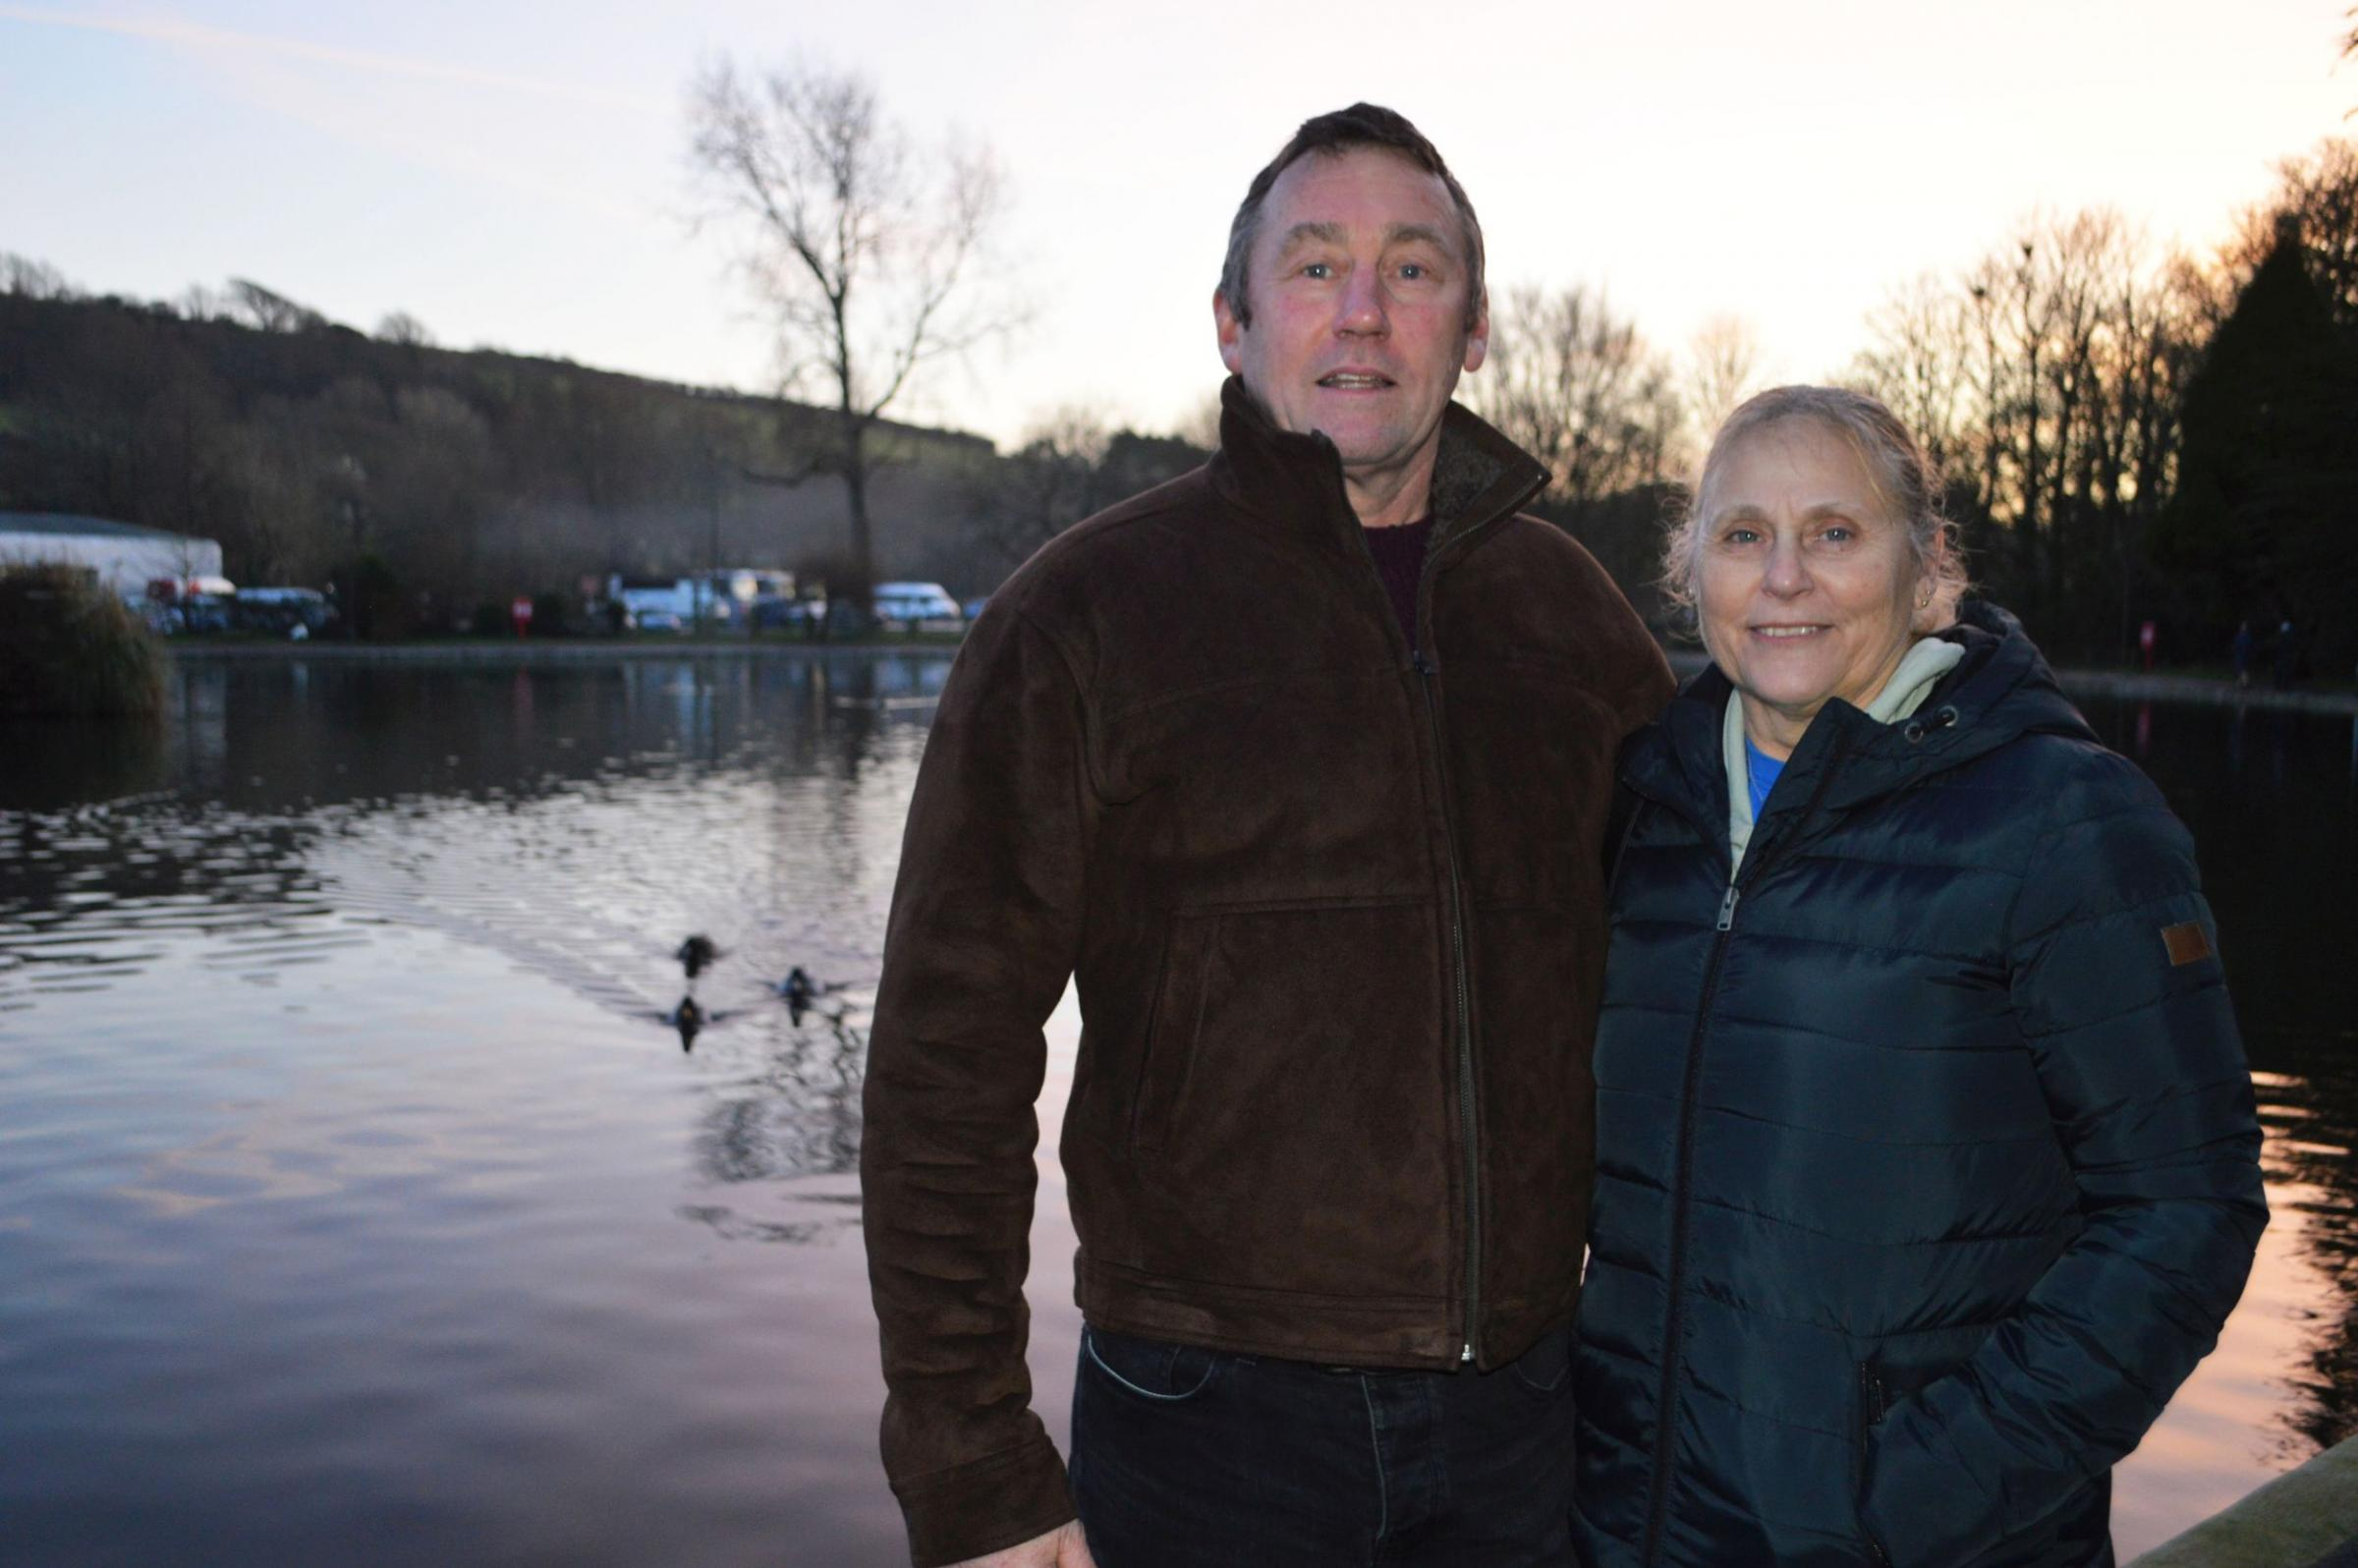 Alan Goldsworthy and Sue Mallinder at the spot where they pulled the woman from Helston Boating Lake